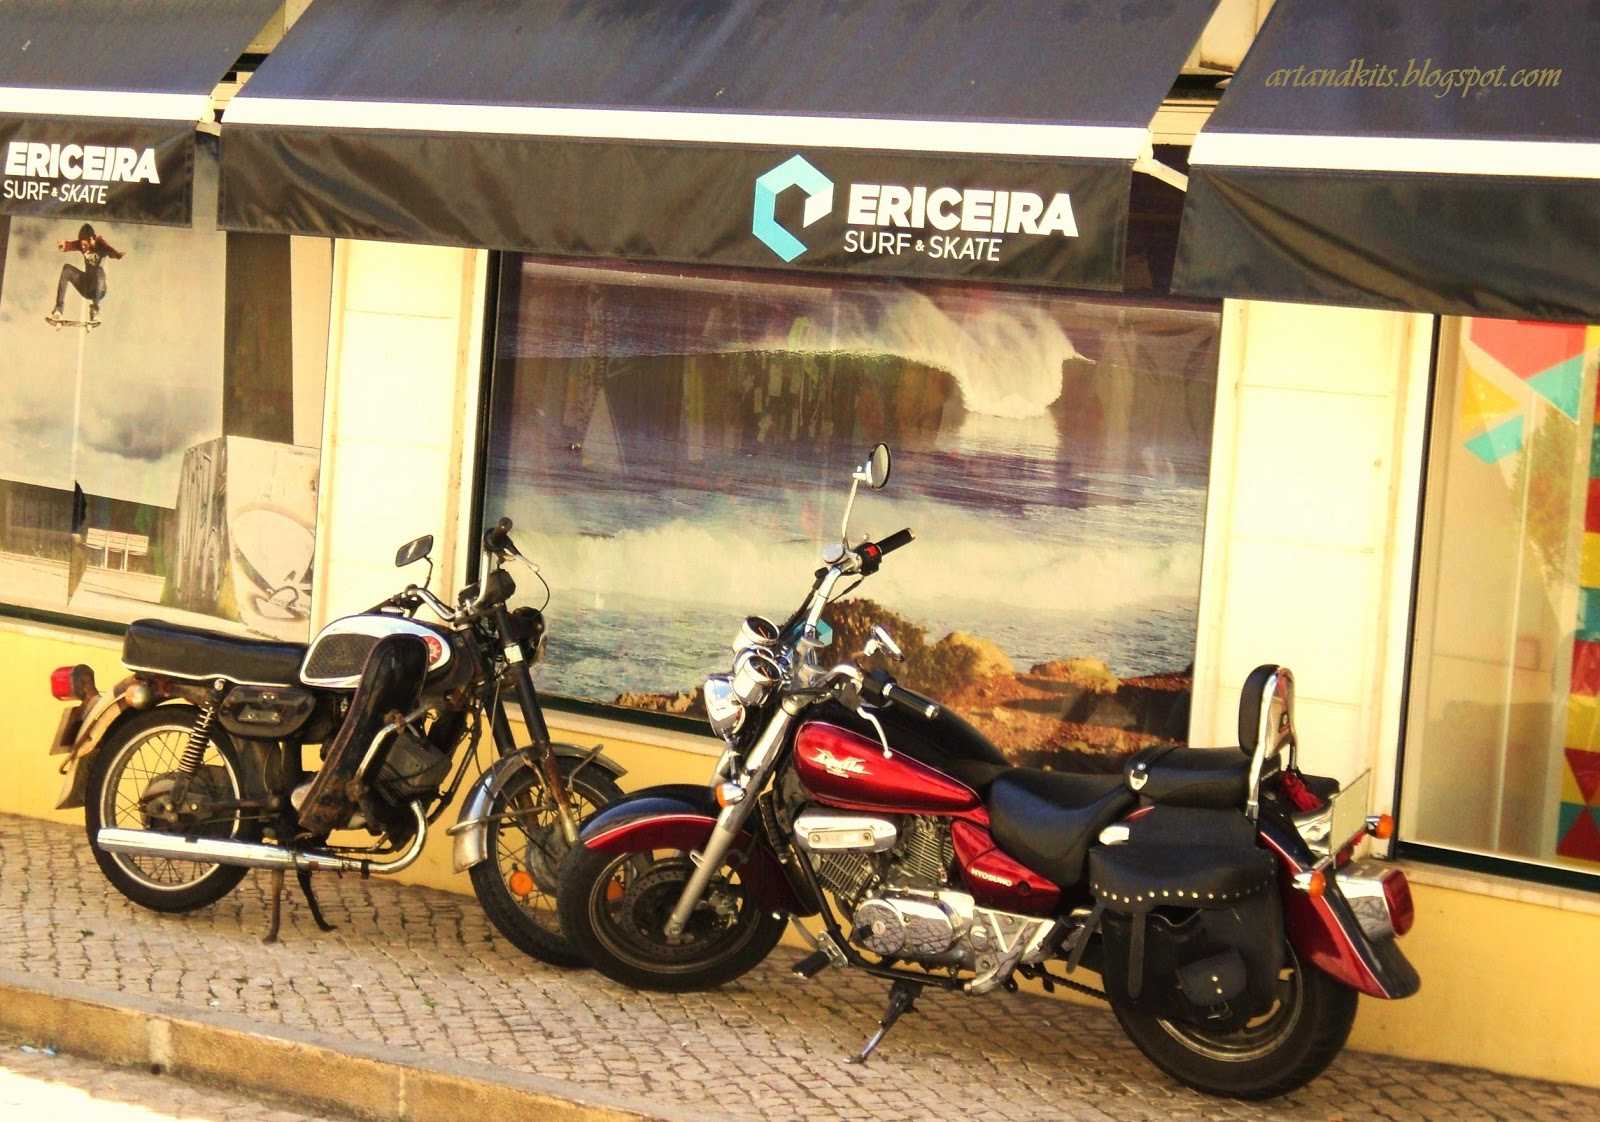 Não me ocorrendo muito para dizer sobre esta foto, tirada na zona comercial, mesmo no centro da Ericeira... resta-me associá-la à única música, que sempre me vem à mente... quando o tema é motas... vejam o link no post... / Not occurring me much to say about this photo, taken in the commercial area, right in the center of Ericeira... I have nothing left but associate it with the only song that always comes to my mind, when the topic is... motorbikes... see the link on the post...